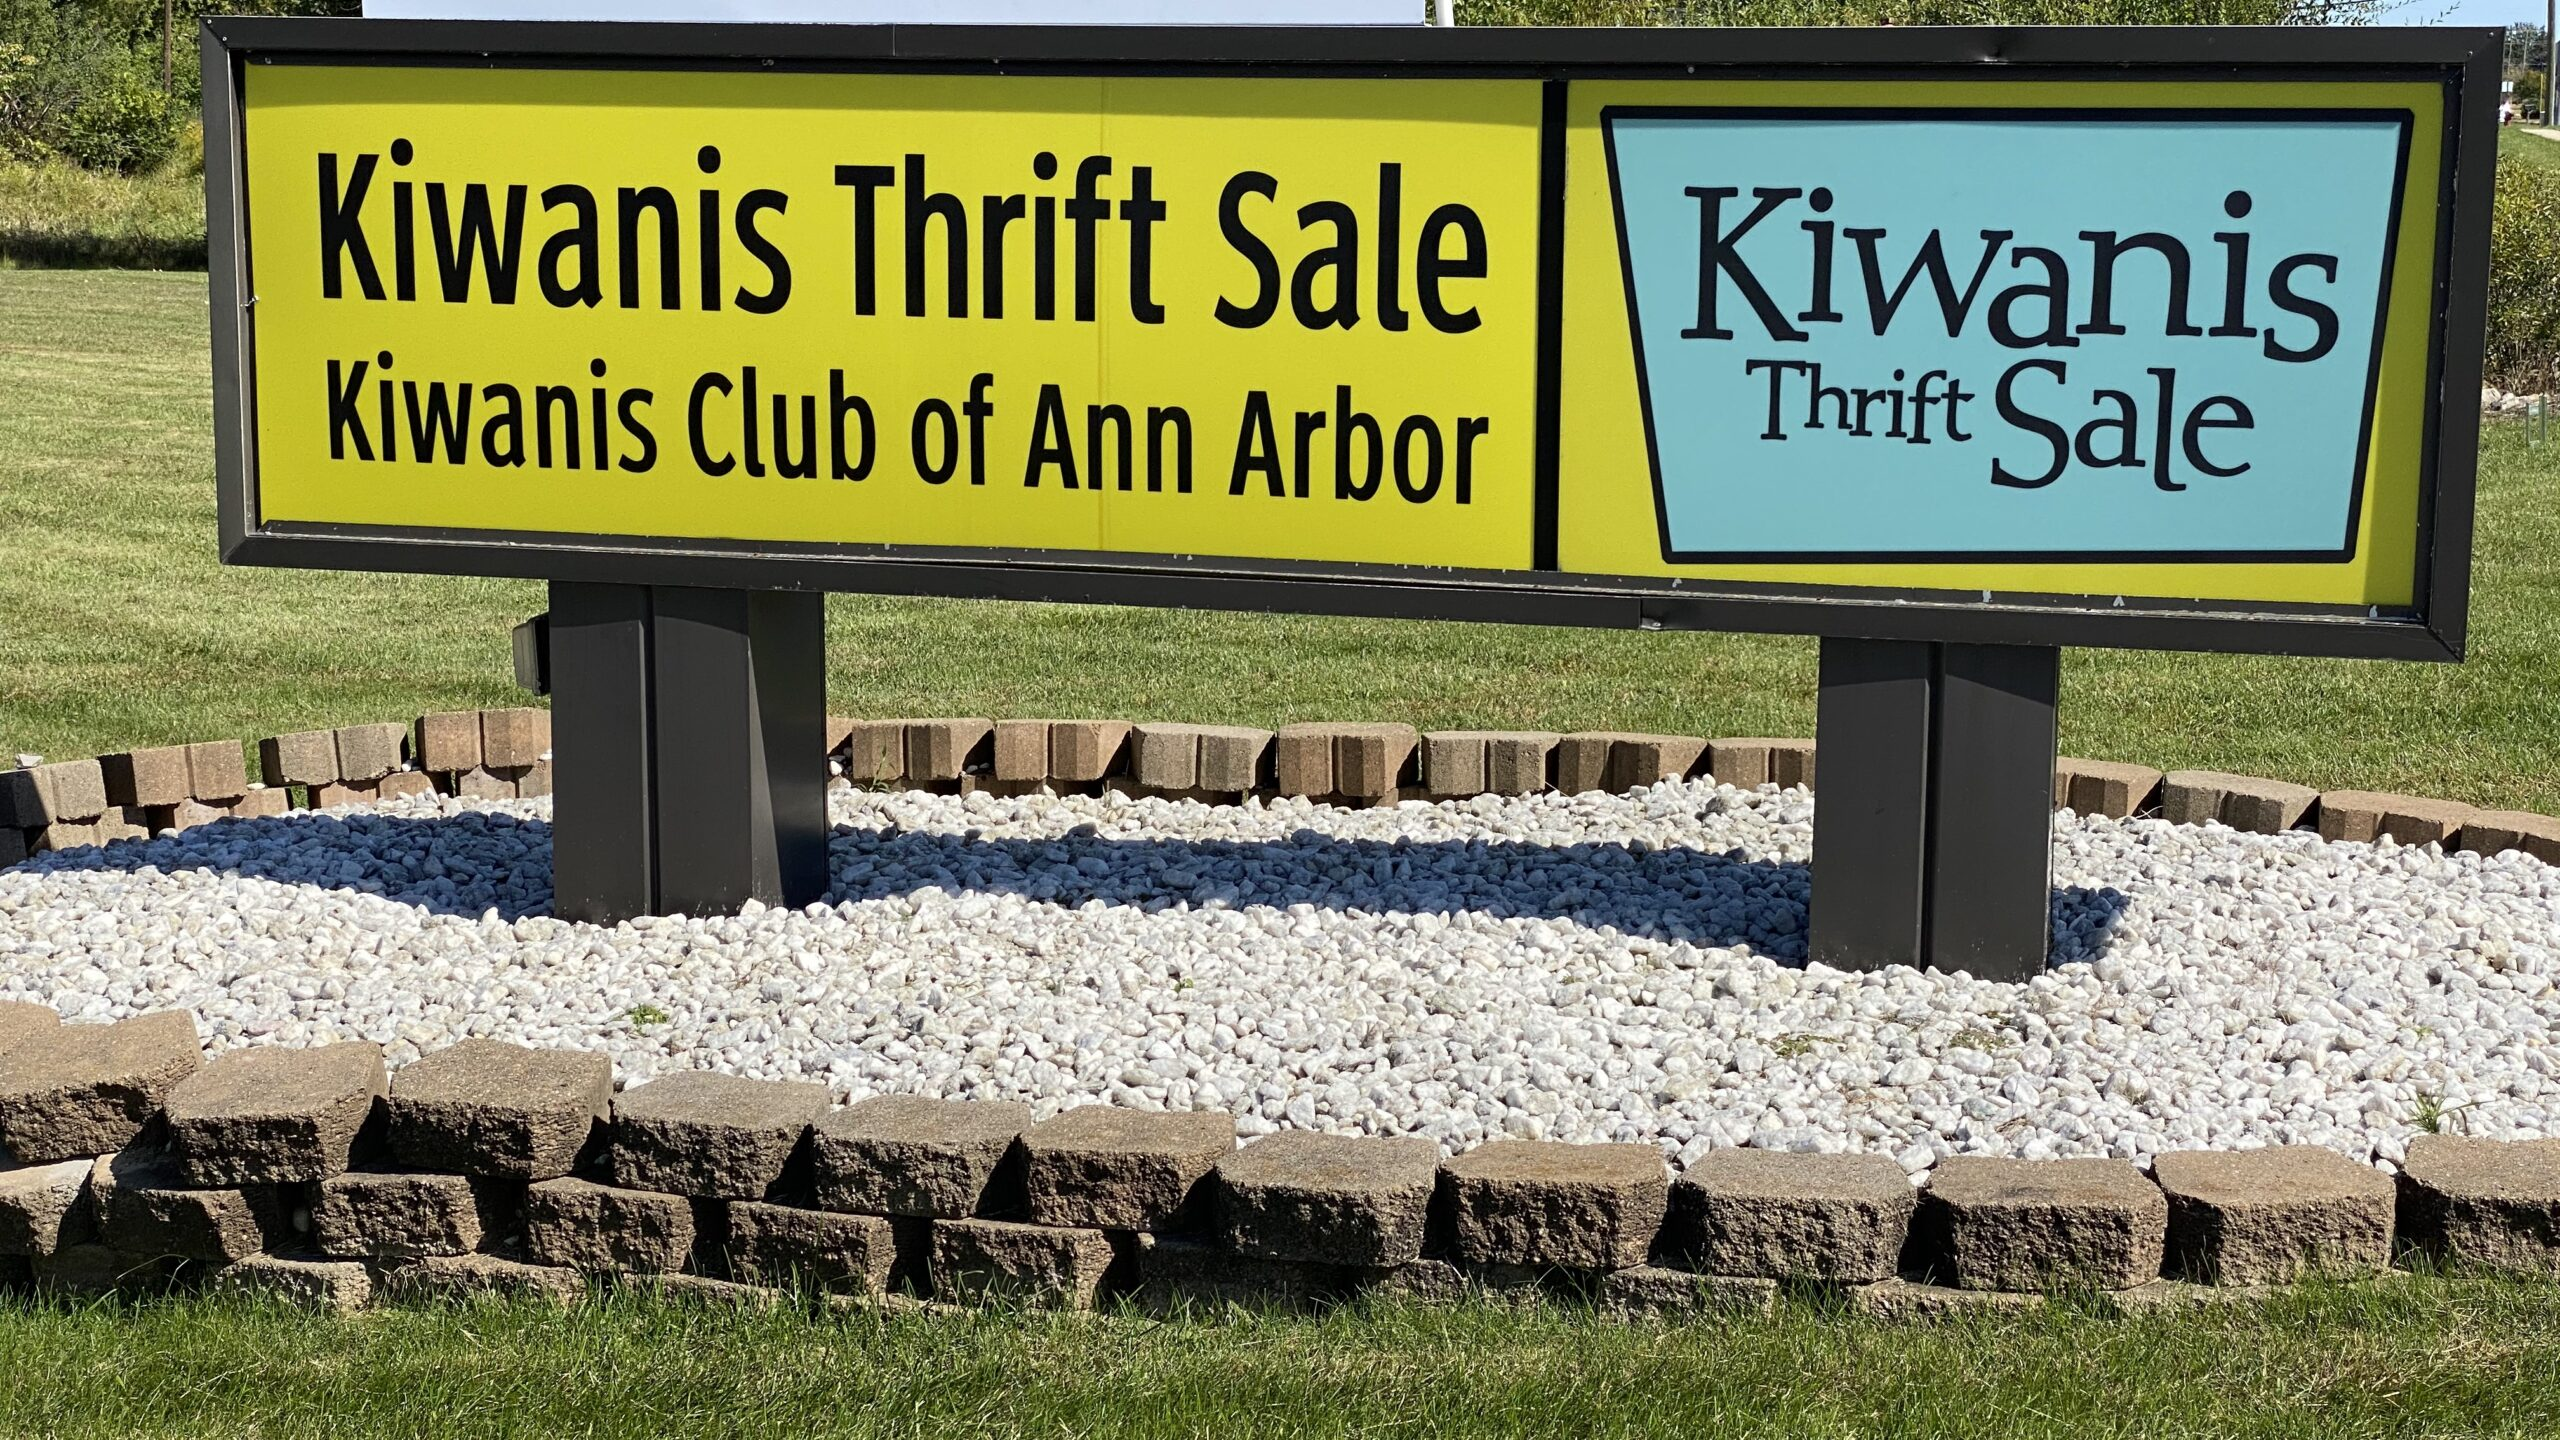 About Kiwanis Thrift Sale